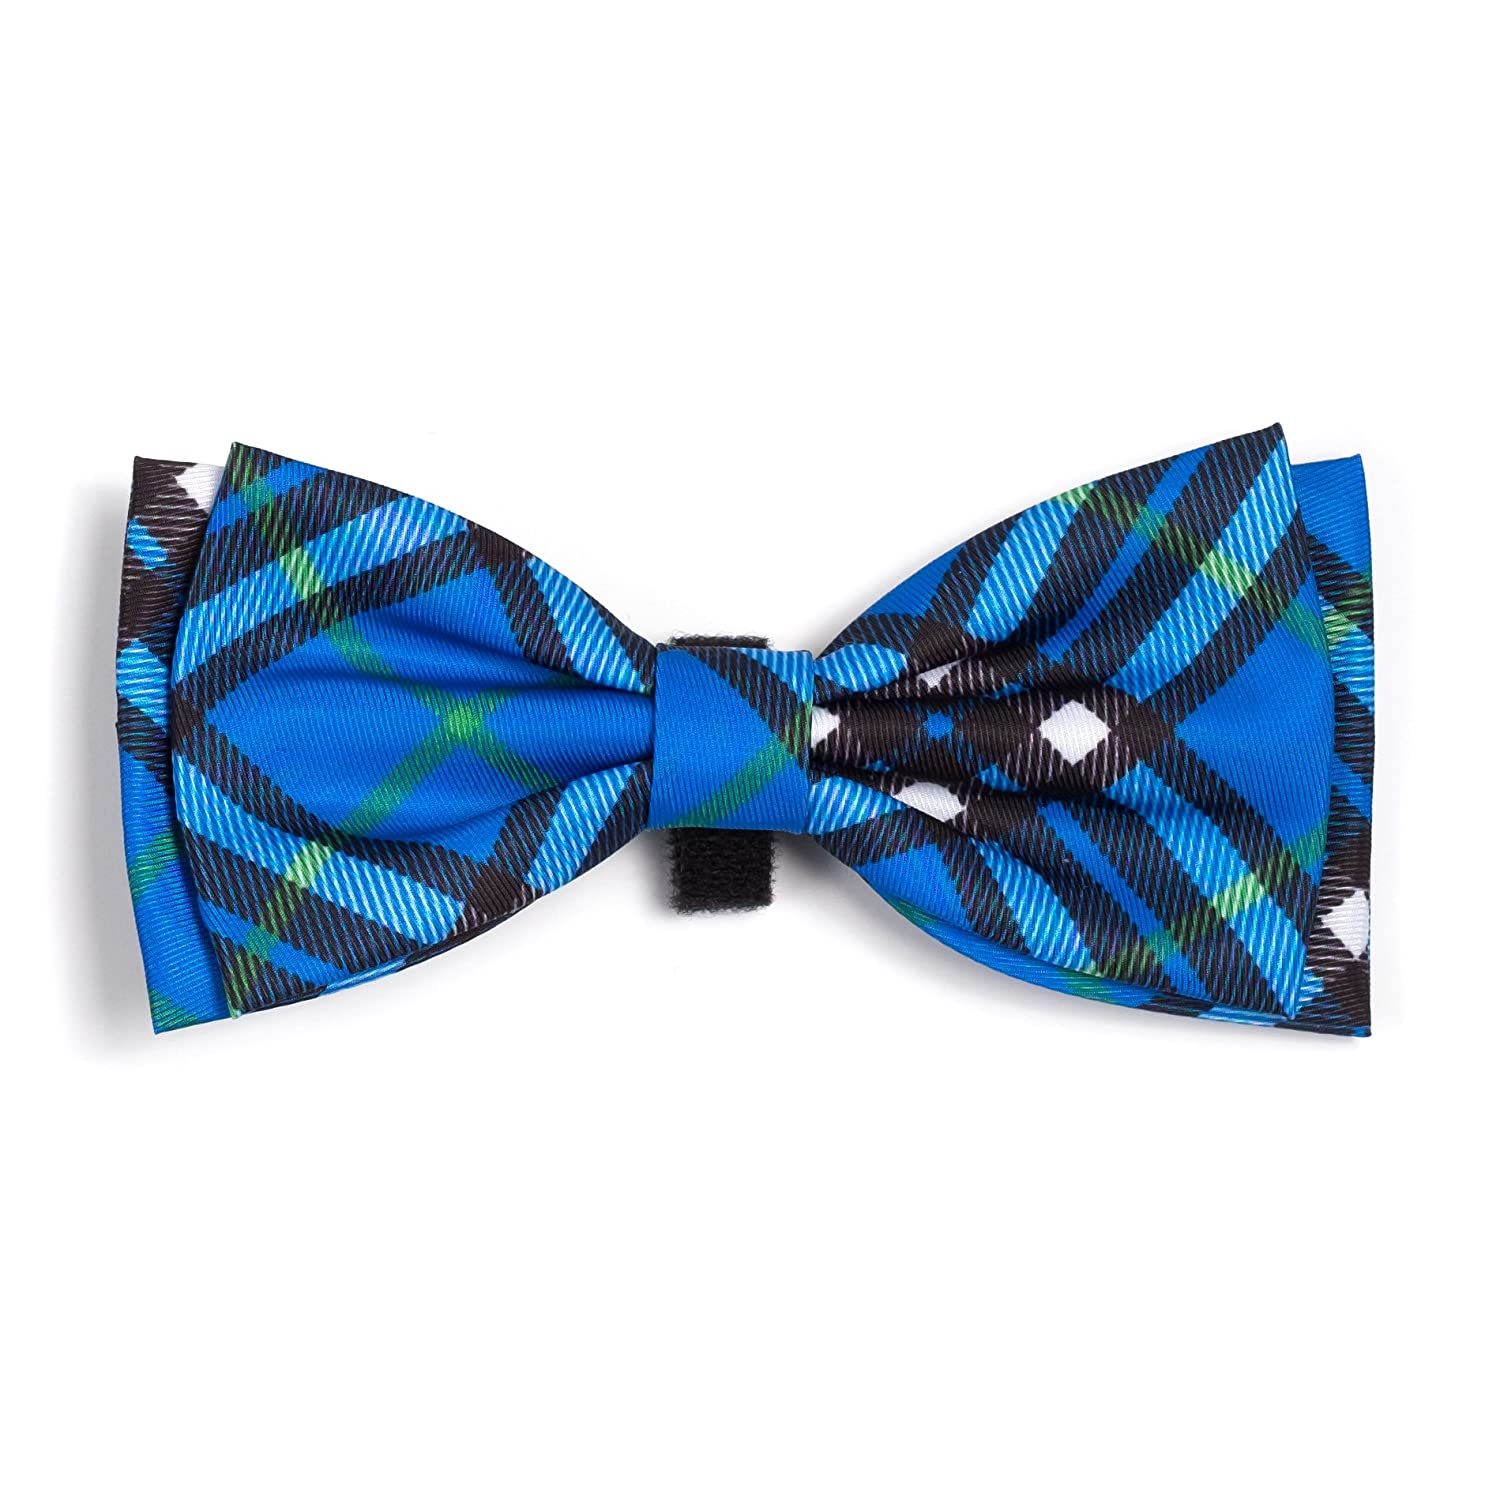 L The Worthy Dog Bias Plaid Bow Tie for Dogs, Large, bluee